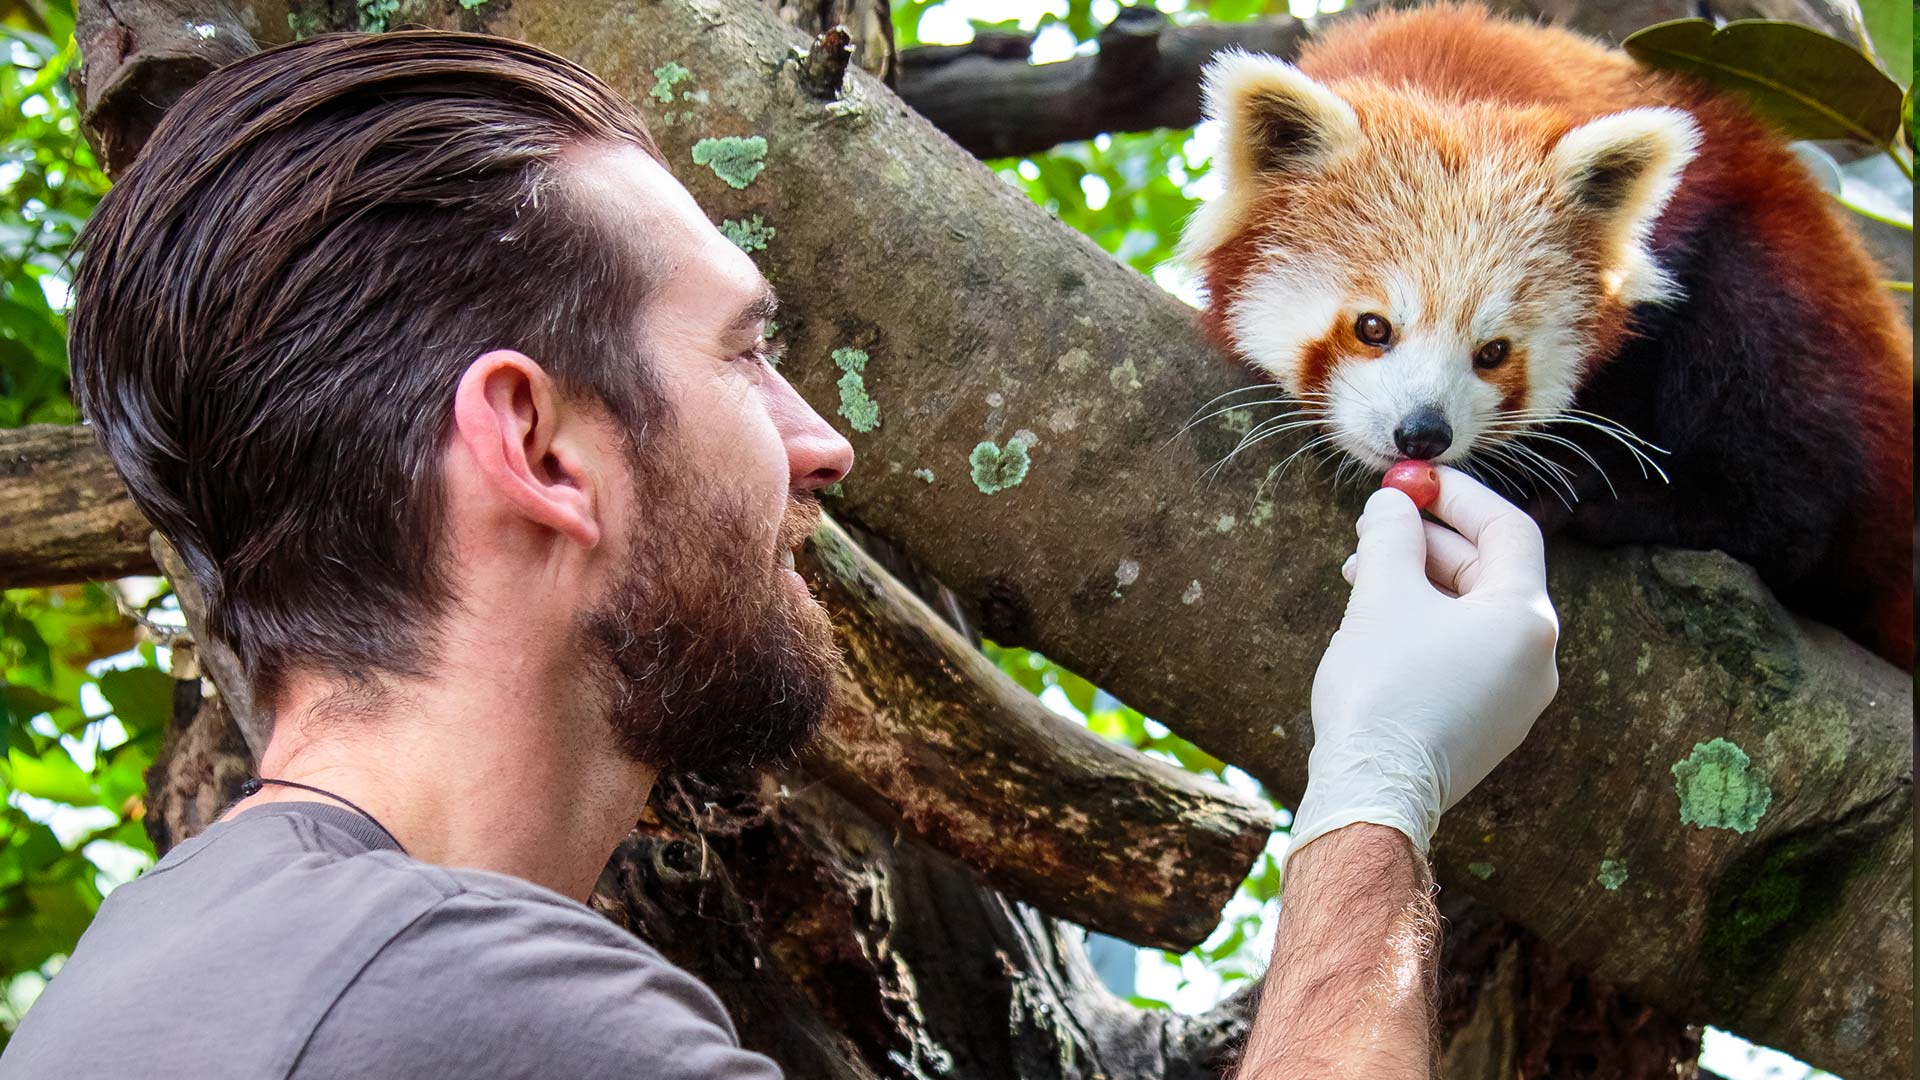 https://rfacdn.nz/zoo/assets/media/red-panda-gallery.jpg